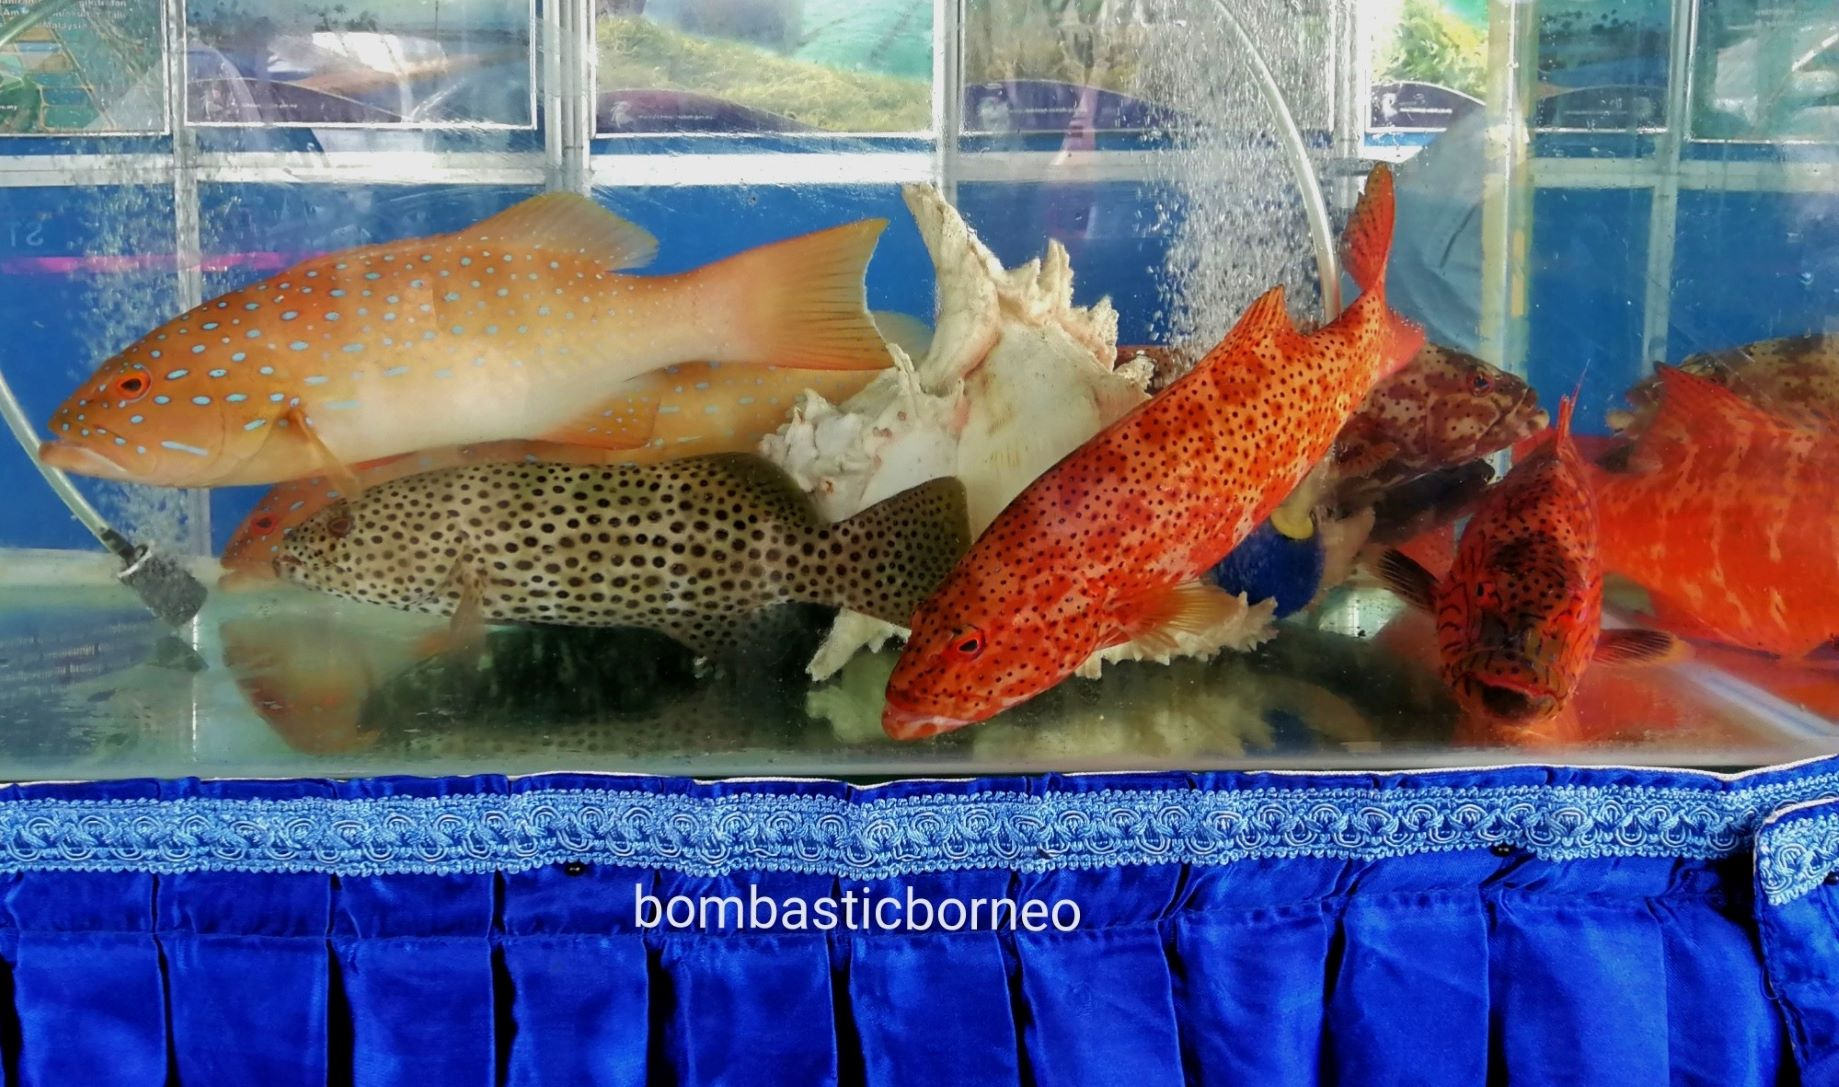 Makanan laut, seafood. backpackers, destination, Semporna, Tawau, Sabah, Malaysia, Tourism, tourist attraction, travel guide, Trans Borneo,